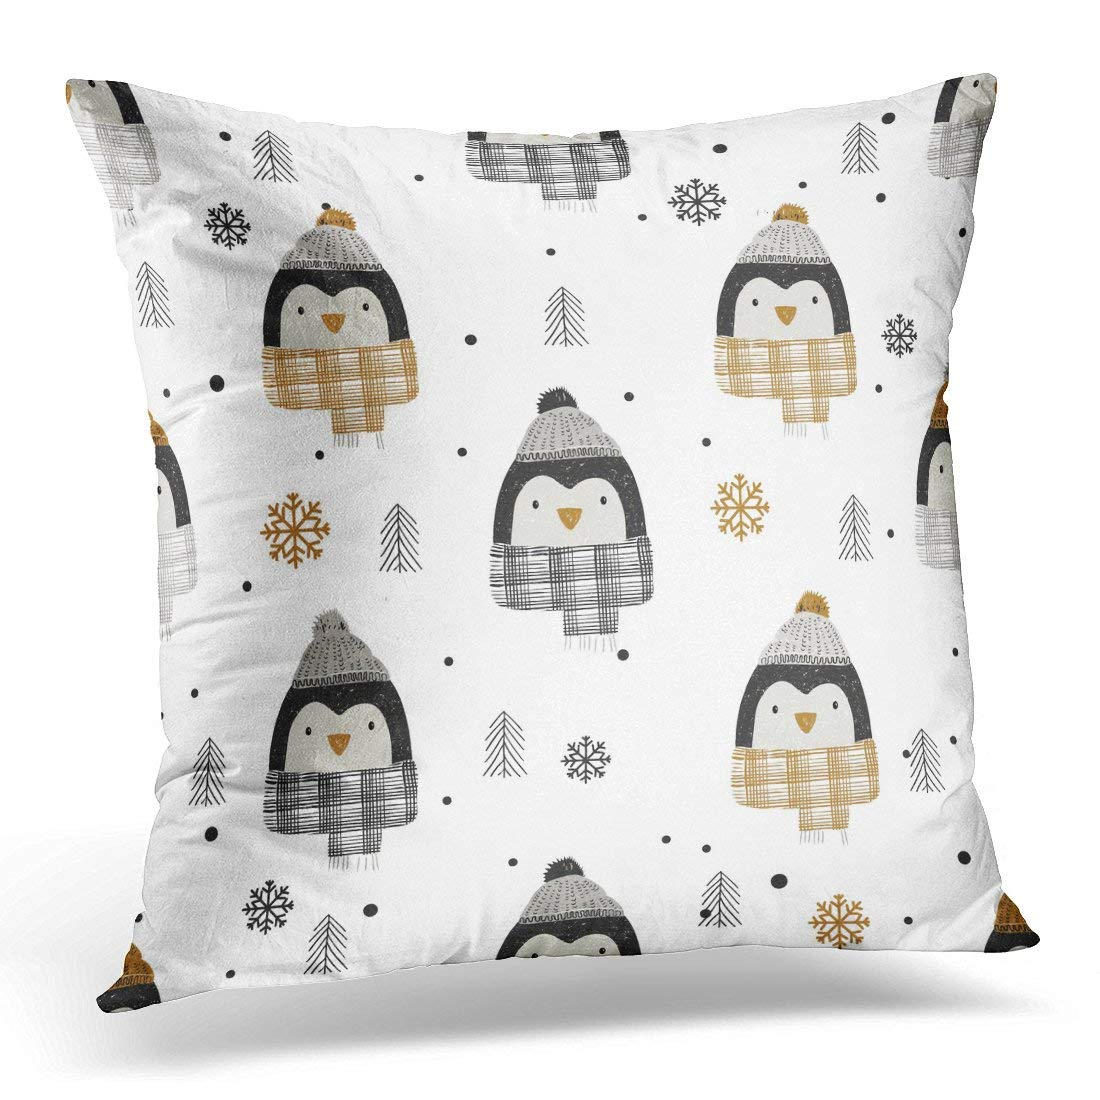 CMFUN Black Baby Monochrome with Cute Penguins Kid's Baby's Design Graphic White Christmas Pillow Case Pillow Cover 18x18 inch